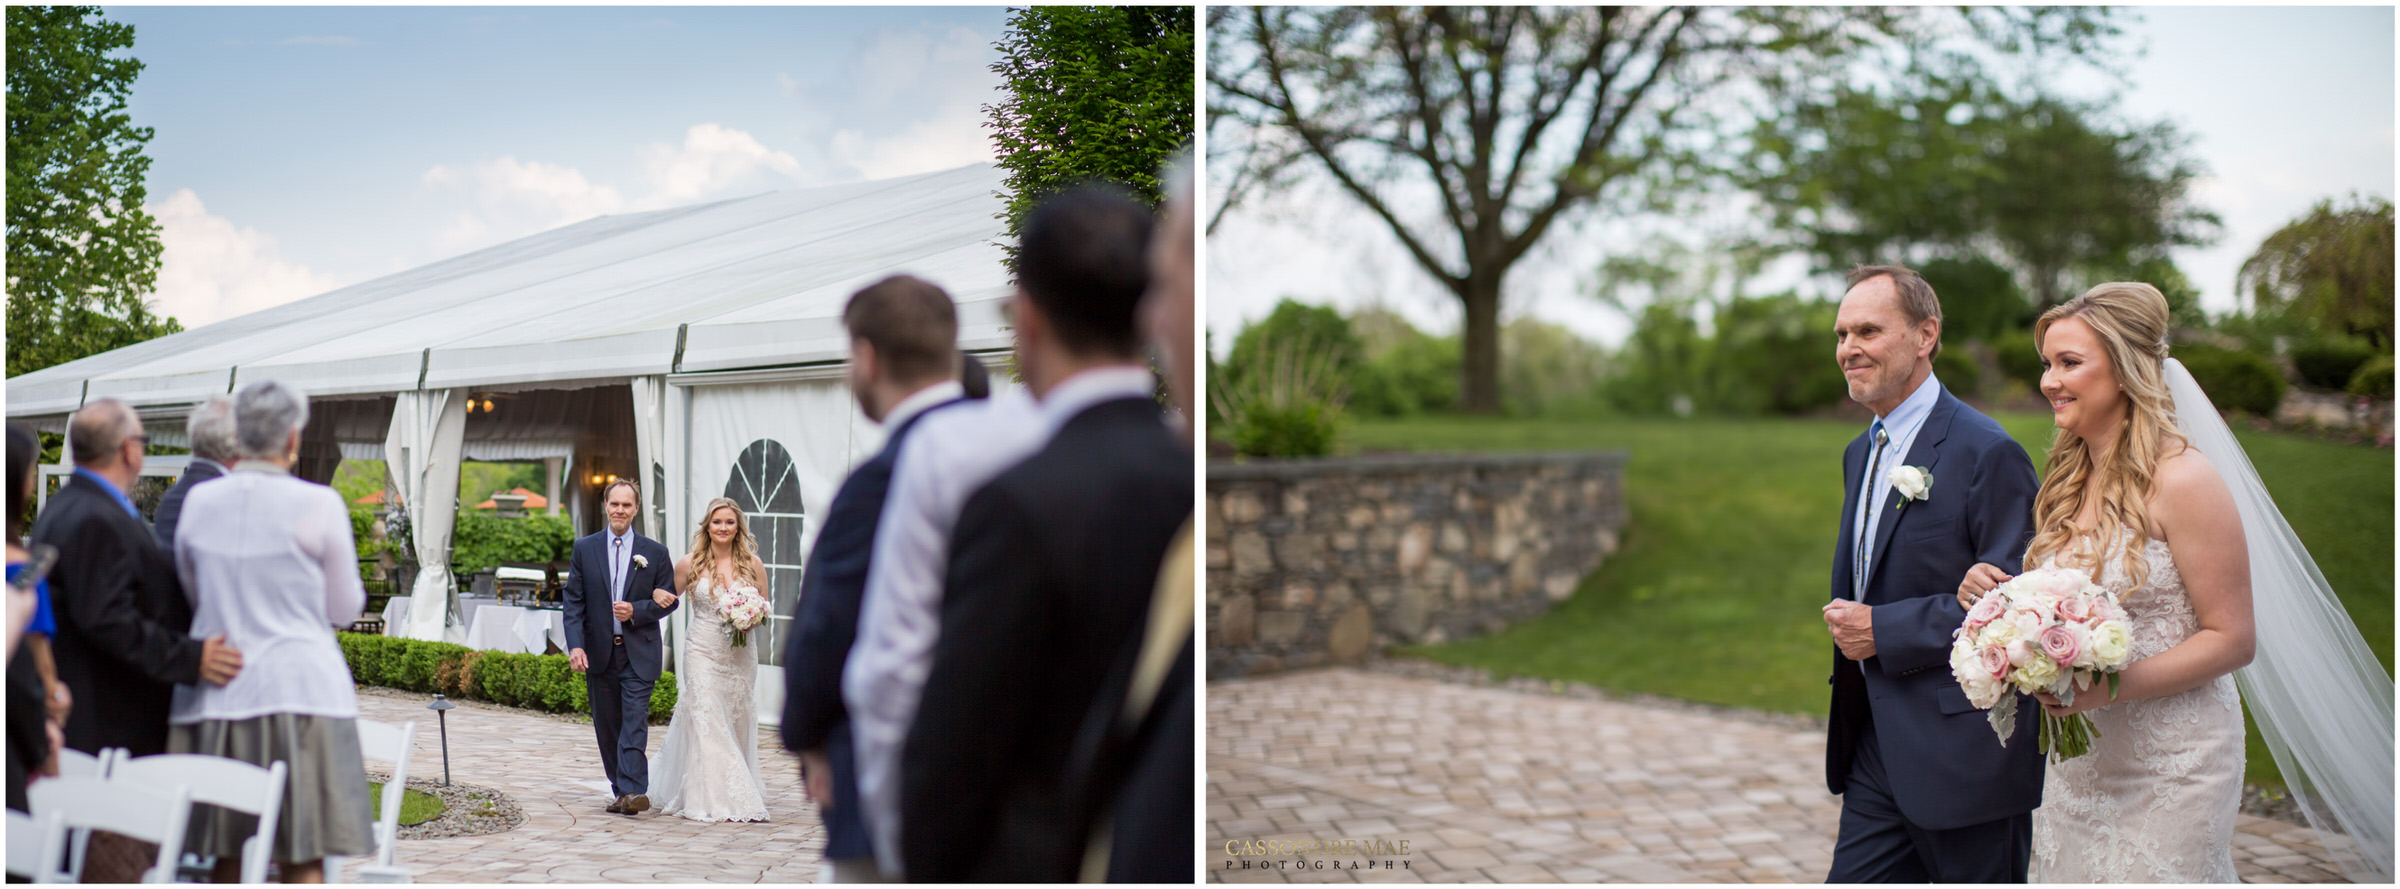 Cassondre Mae Photography West Hills Country Club Wedding Middletown NY